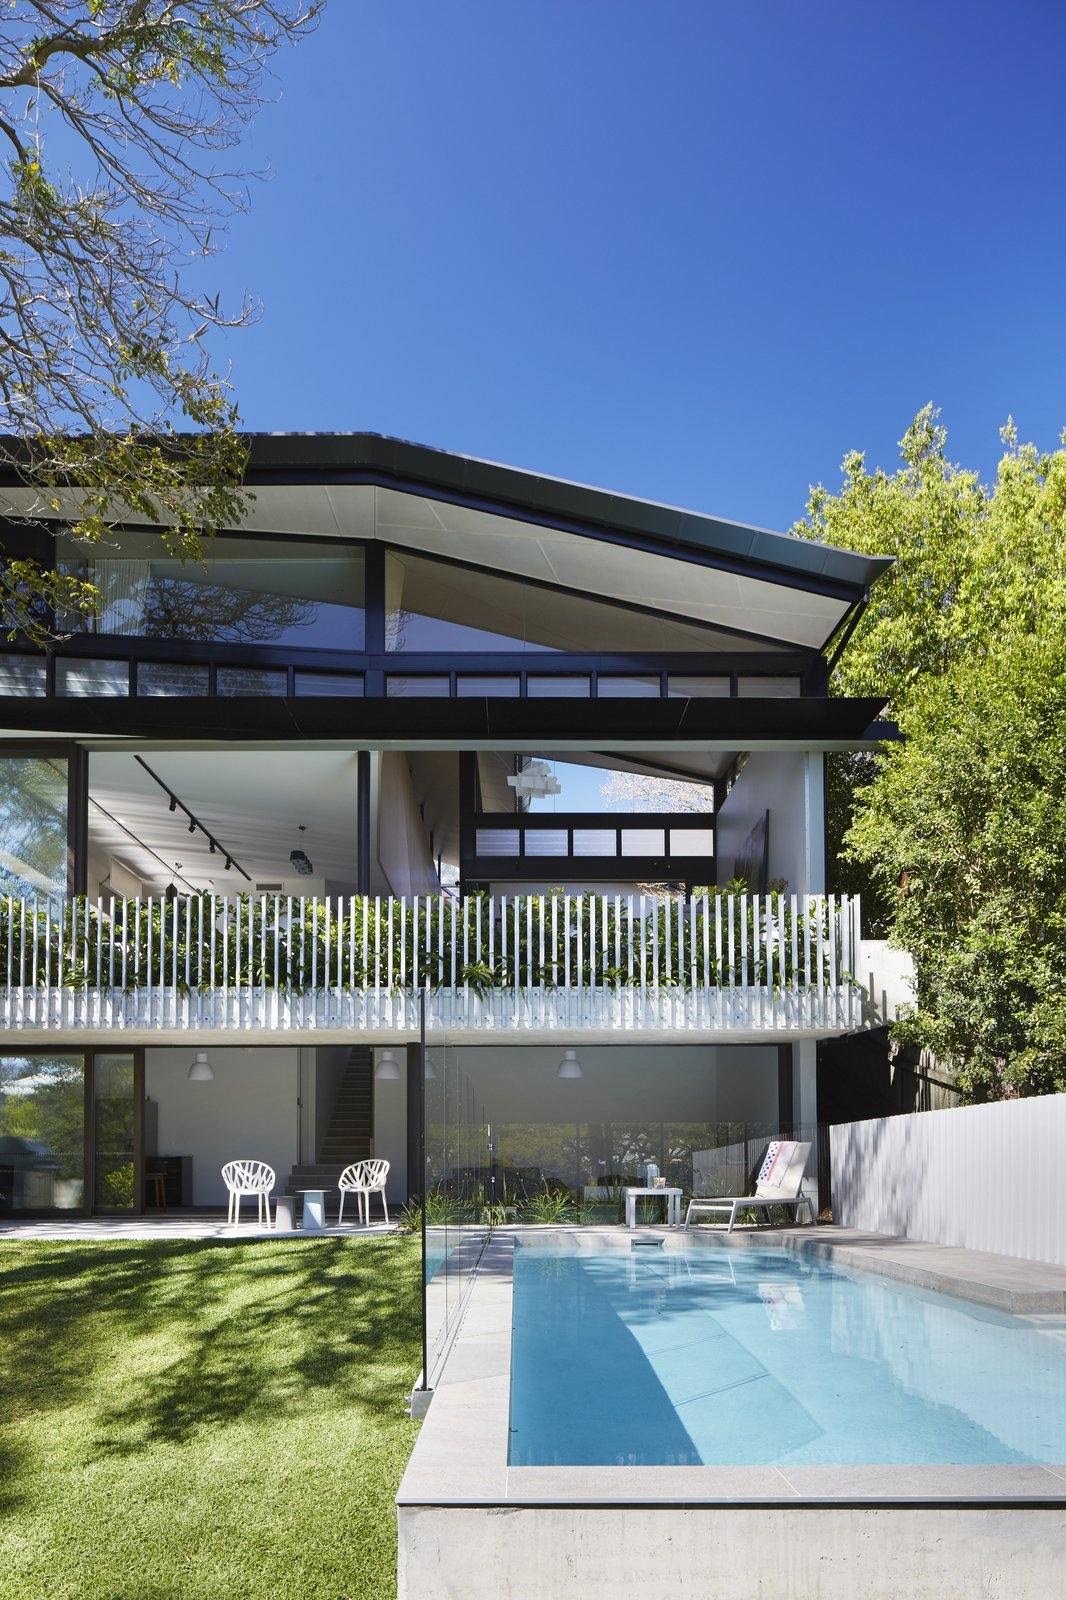 Outdoor, Back Yard, Trees, Grass, Large Pools, Tubs, Shower, Large Patio, Porch, Deck, and Vertical Fences, Wall  Photo 11 of 12 in An Edgy Slatted Facade Conceals a Striking Indoor/Outdoor Home in Brisbane